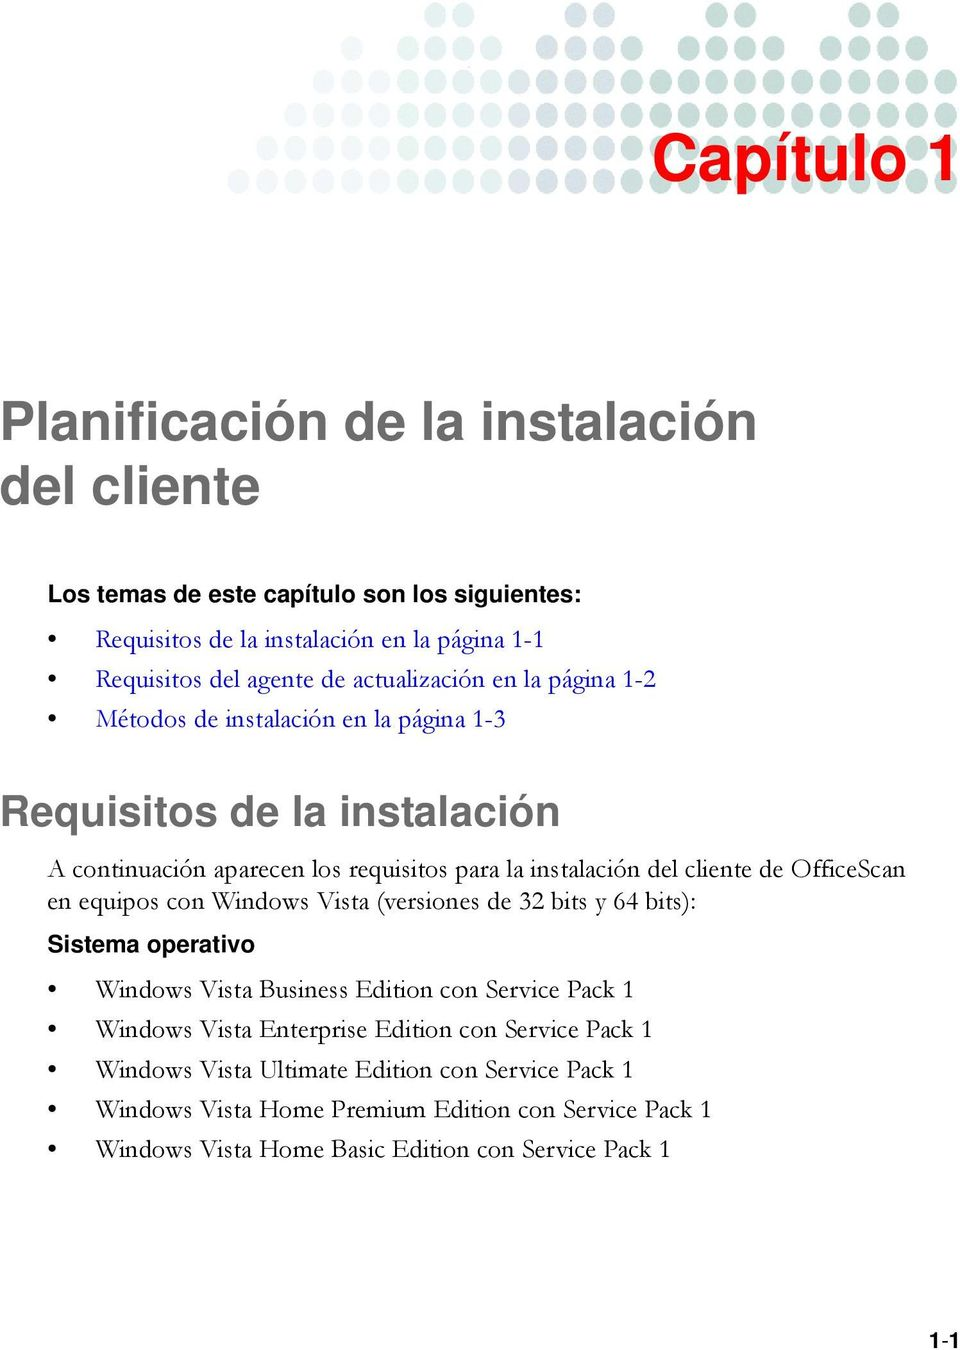 OfficeScan en equipos con Windows Vista (versiones de 32 bits y 64 bits): Sistema operativo Windows Vista Business Edition con Service Pack 1 Windows Vista Enterprise Edition